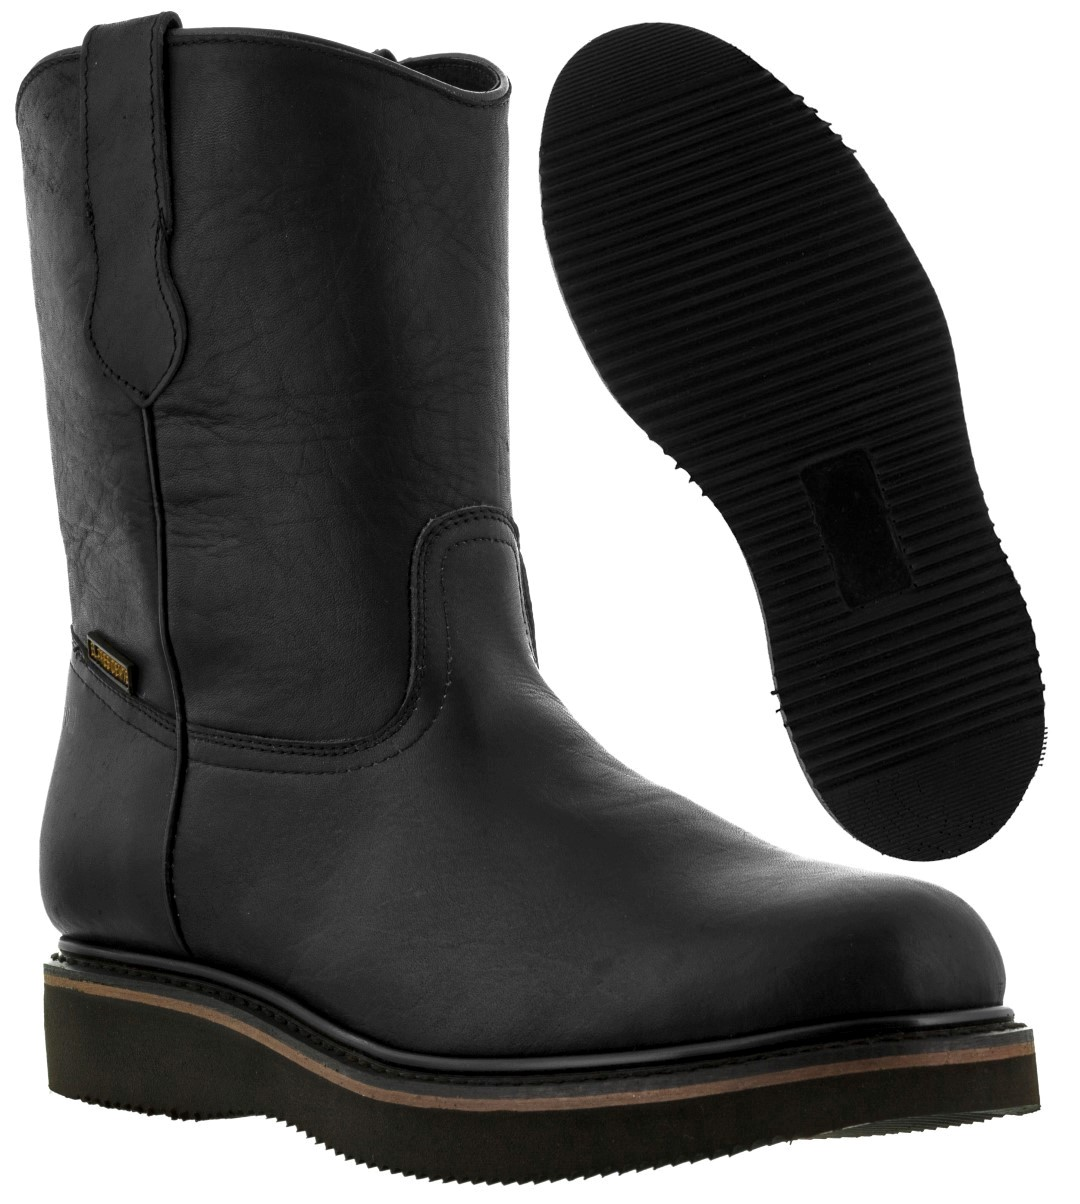 Men S Black Leather Oil Water Slip Resistant Durable Work Boots All